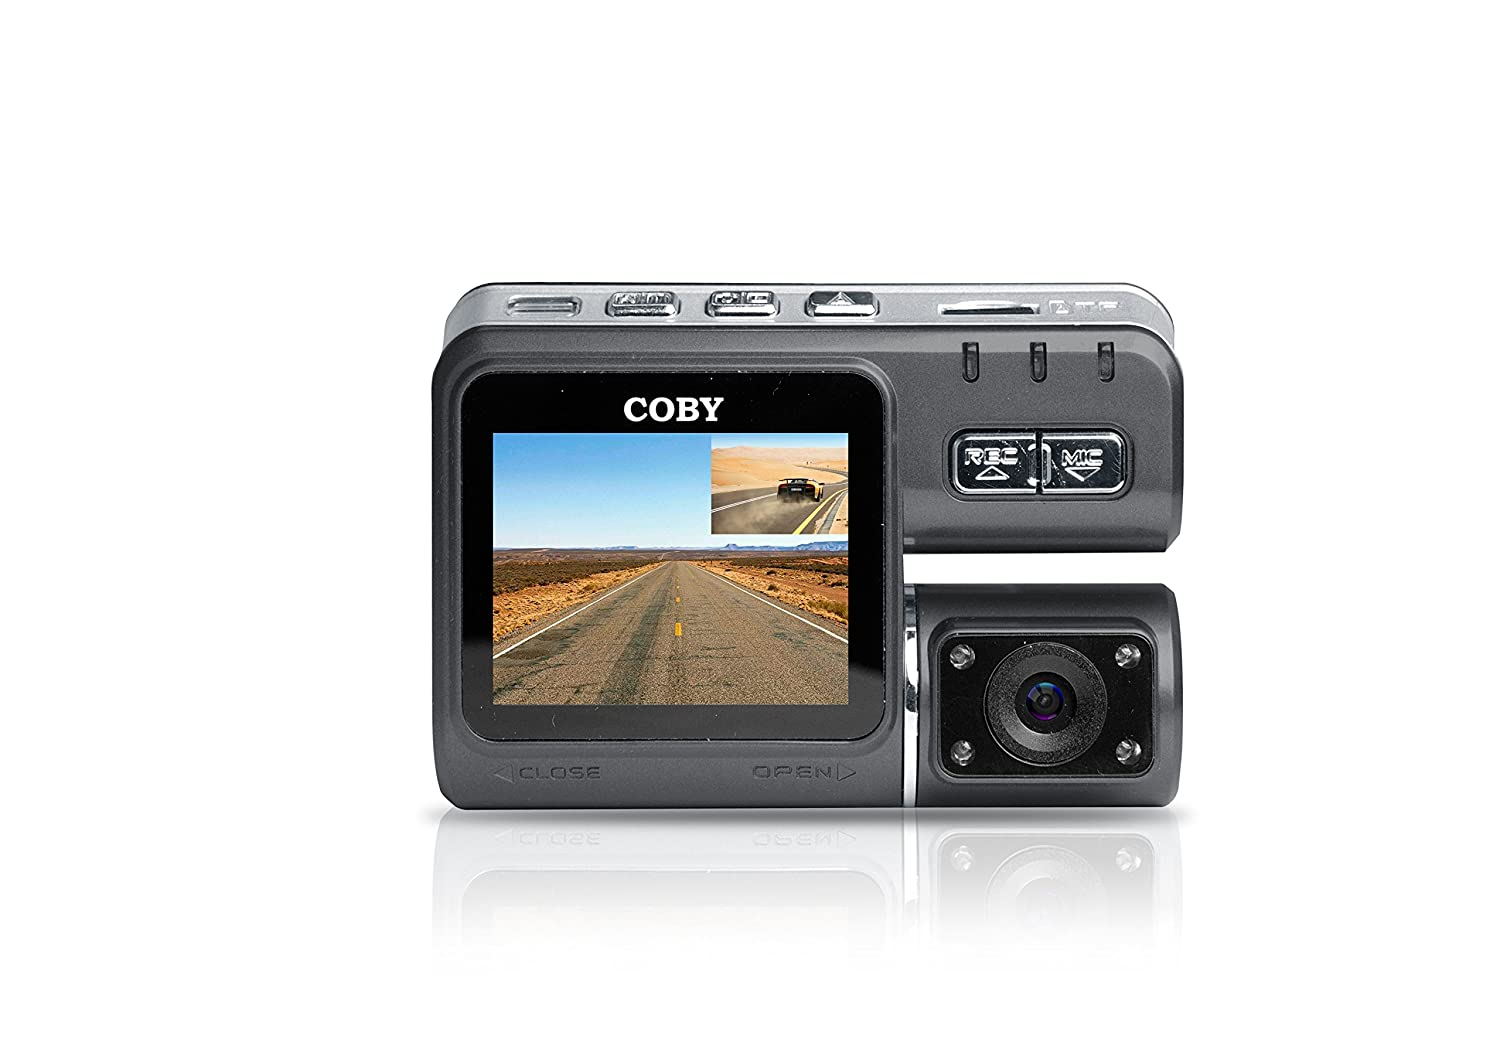 Amazon.com: Coby DCHDM-301-V2 Rear View Mirror 1080P Dash Cam and DVR: Car Electronics